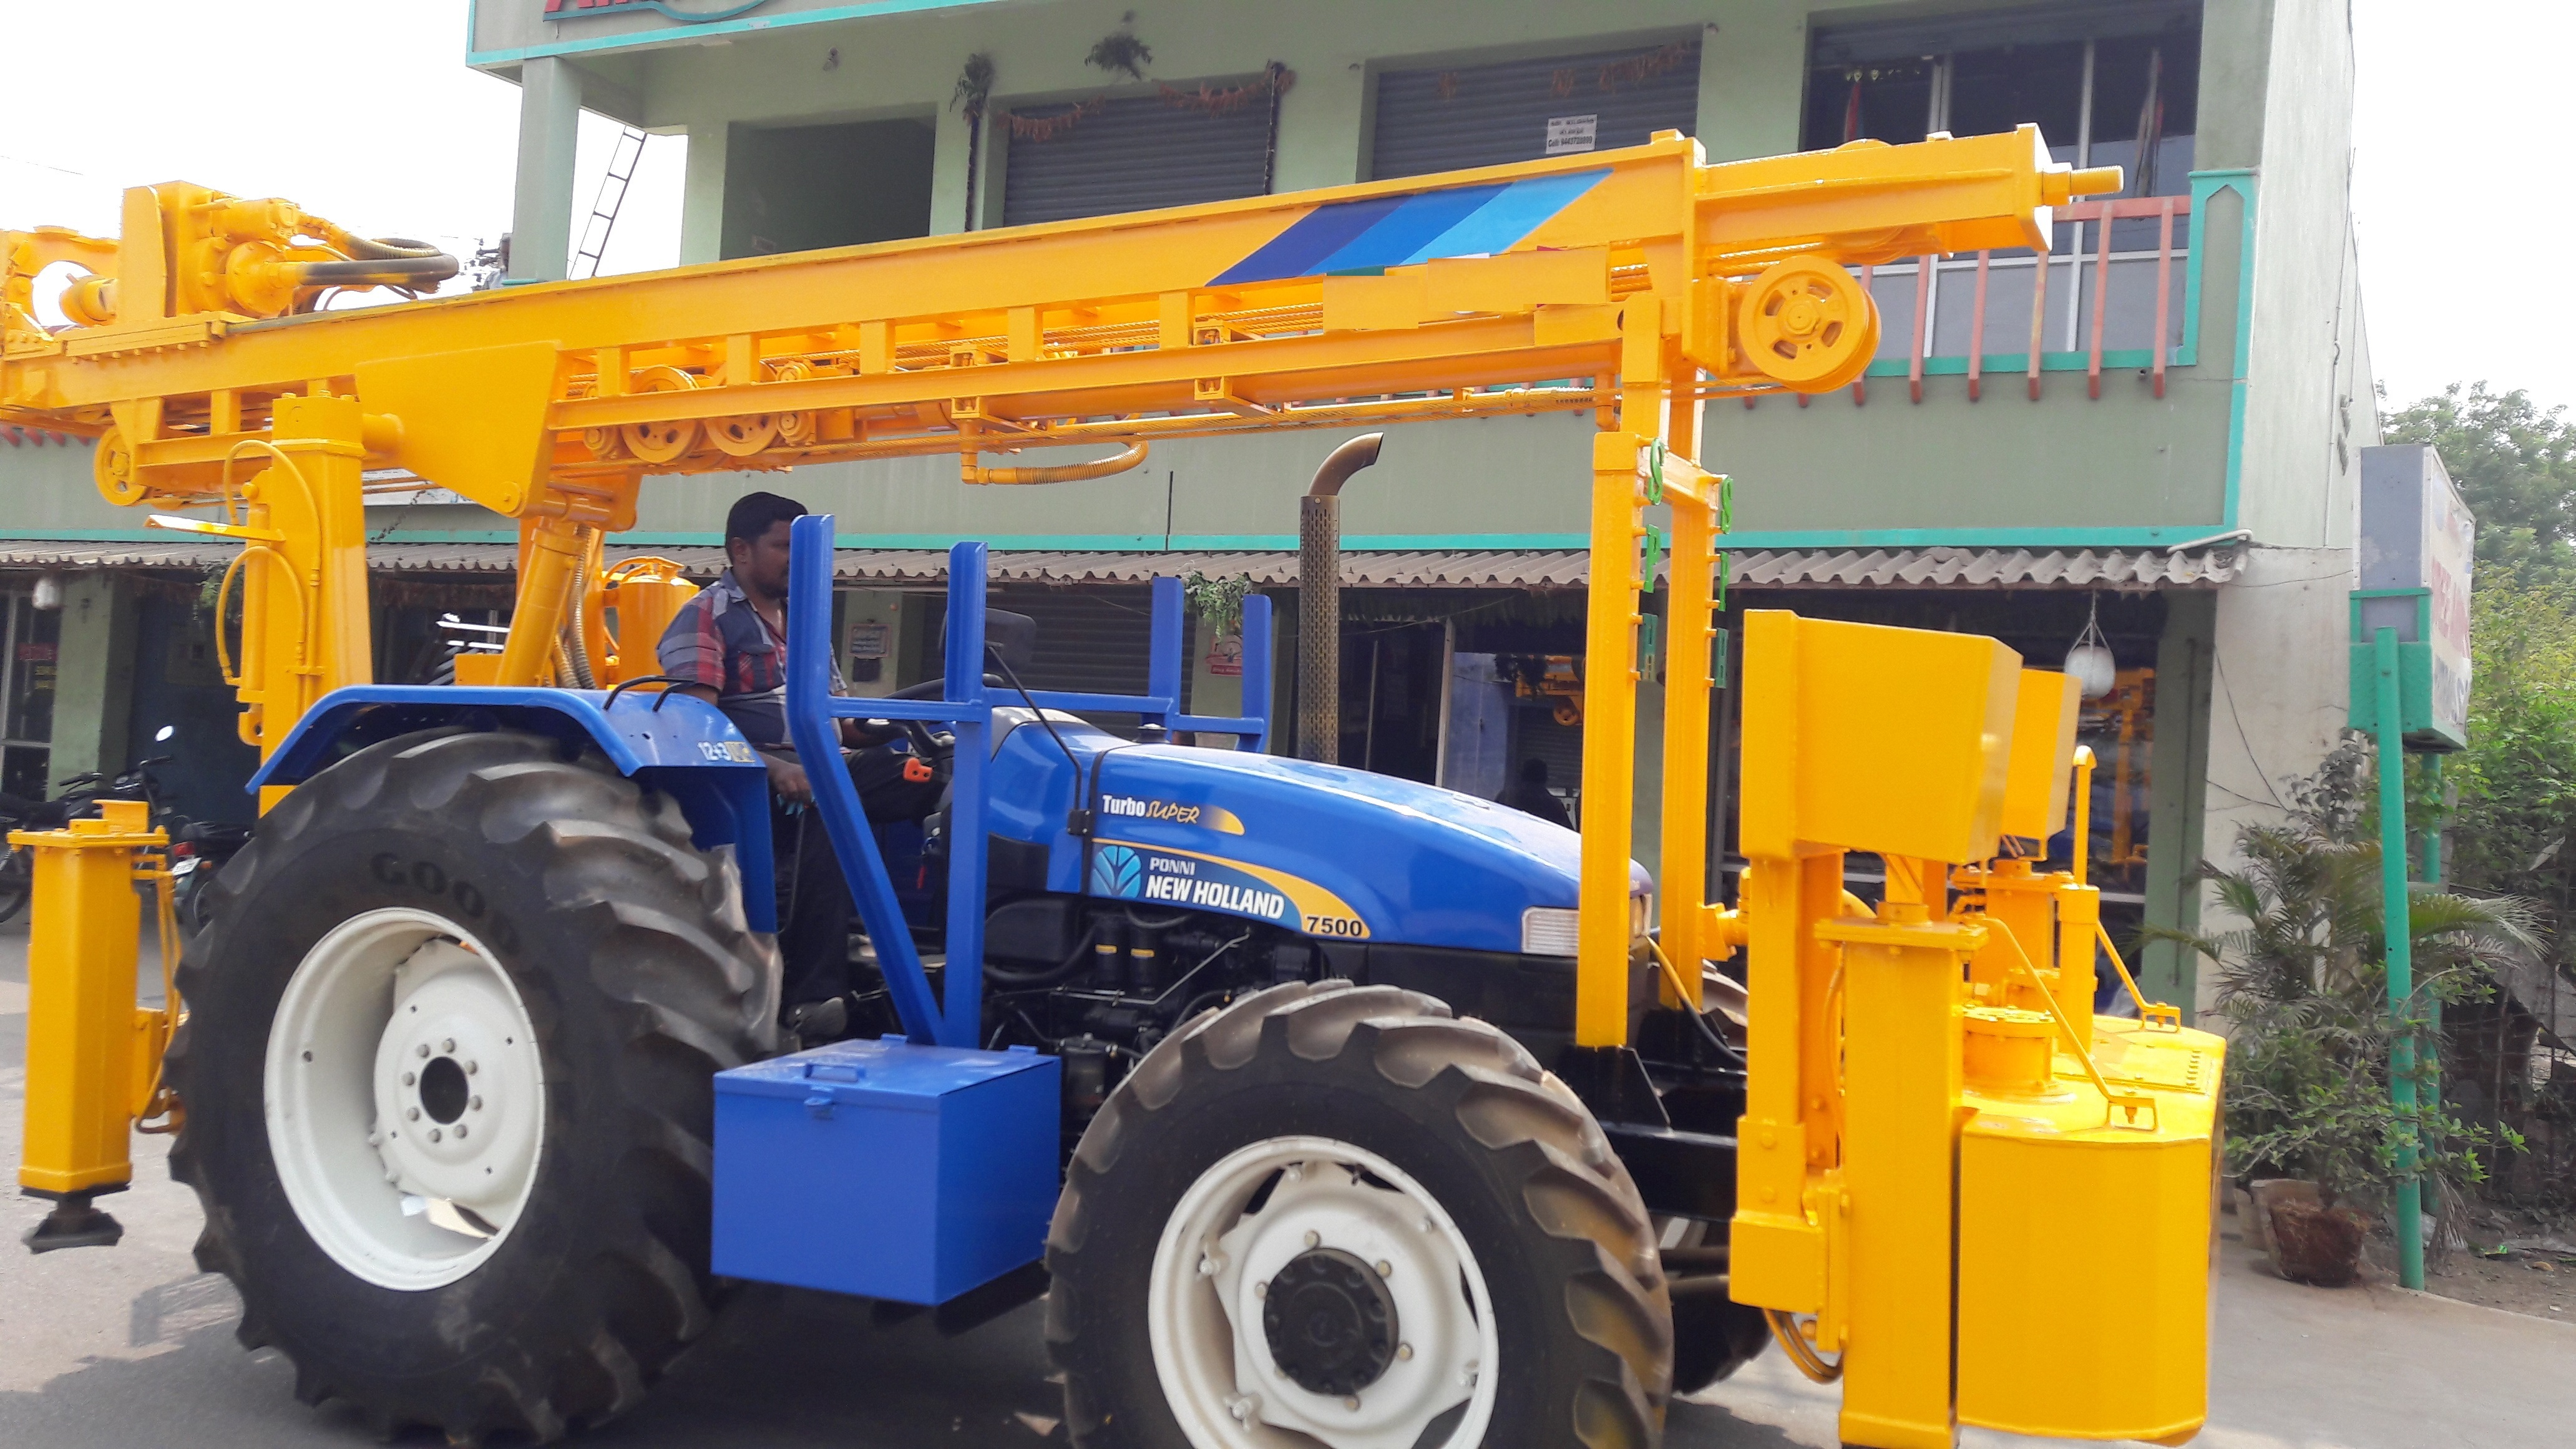 150 Meter Tractor Soil Investigation Drilling Rig